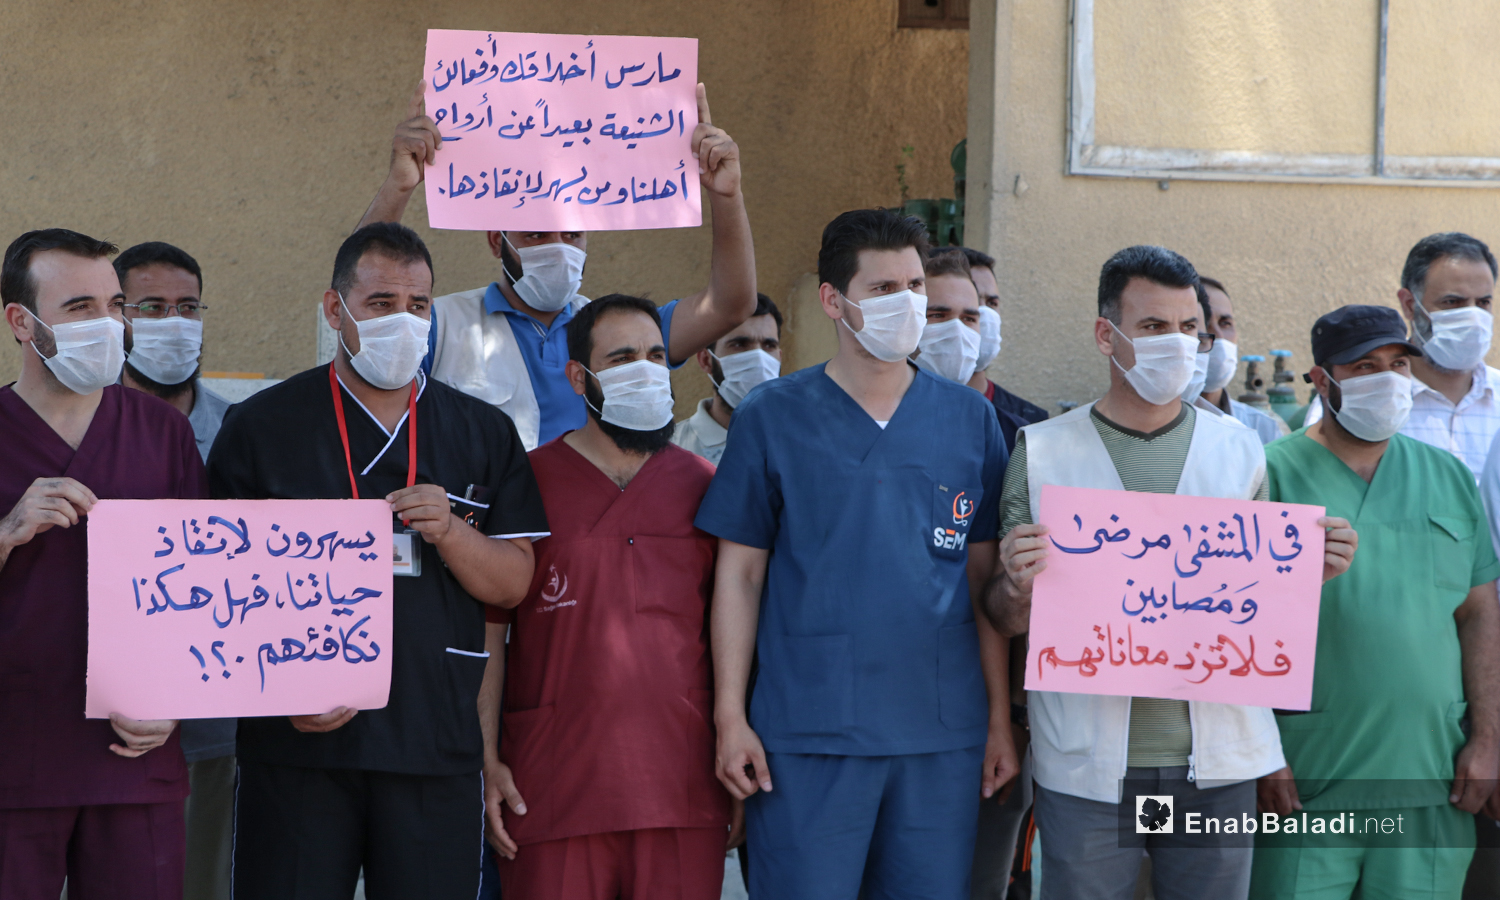 Medical workers protest against the military factions' targeting of medical centers in al-Bab city of northern Aleppo countryside – 05 July 2020 (Enab Baladi / Asim Melhem)